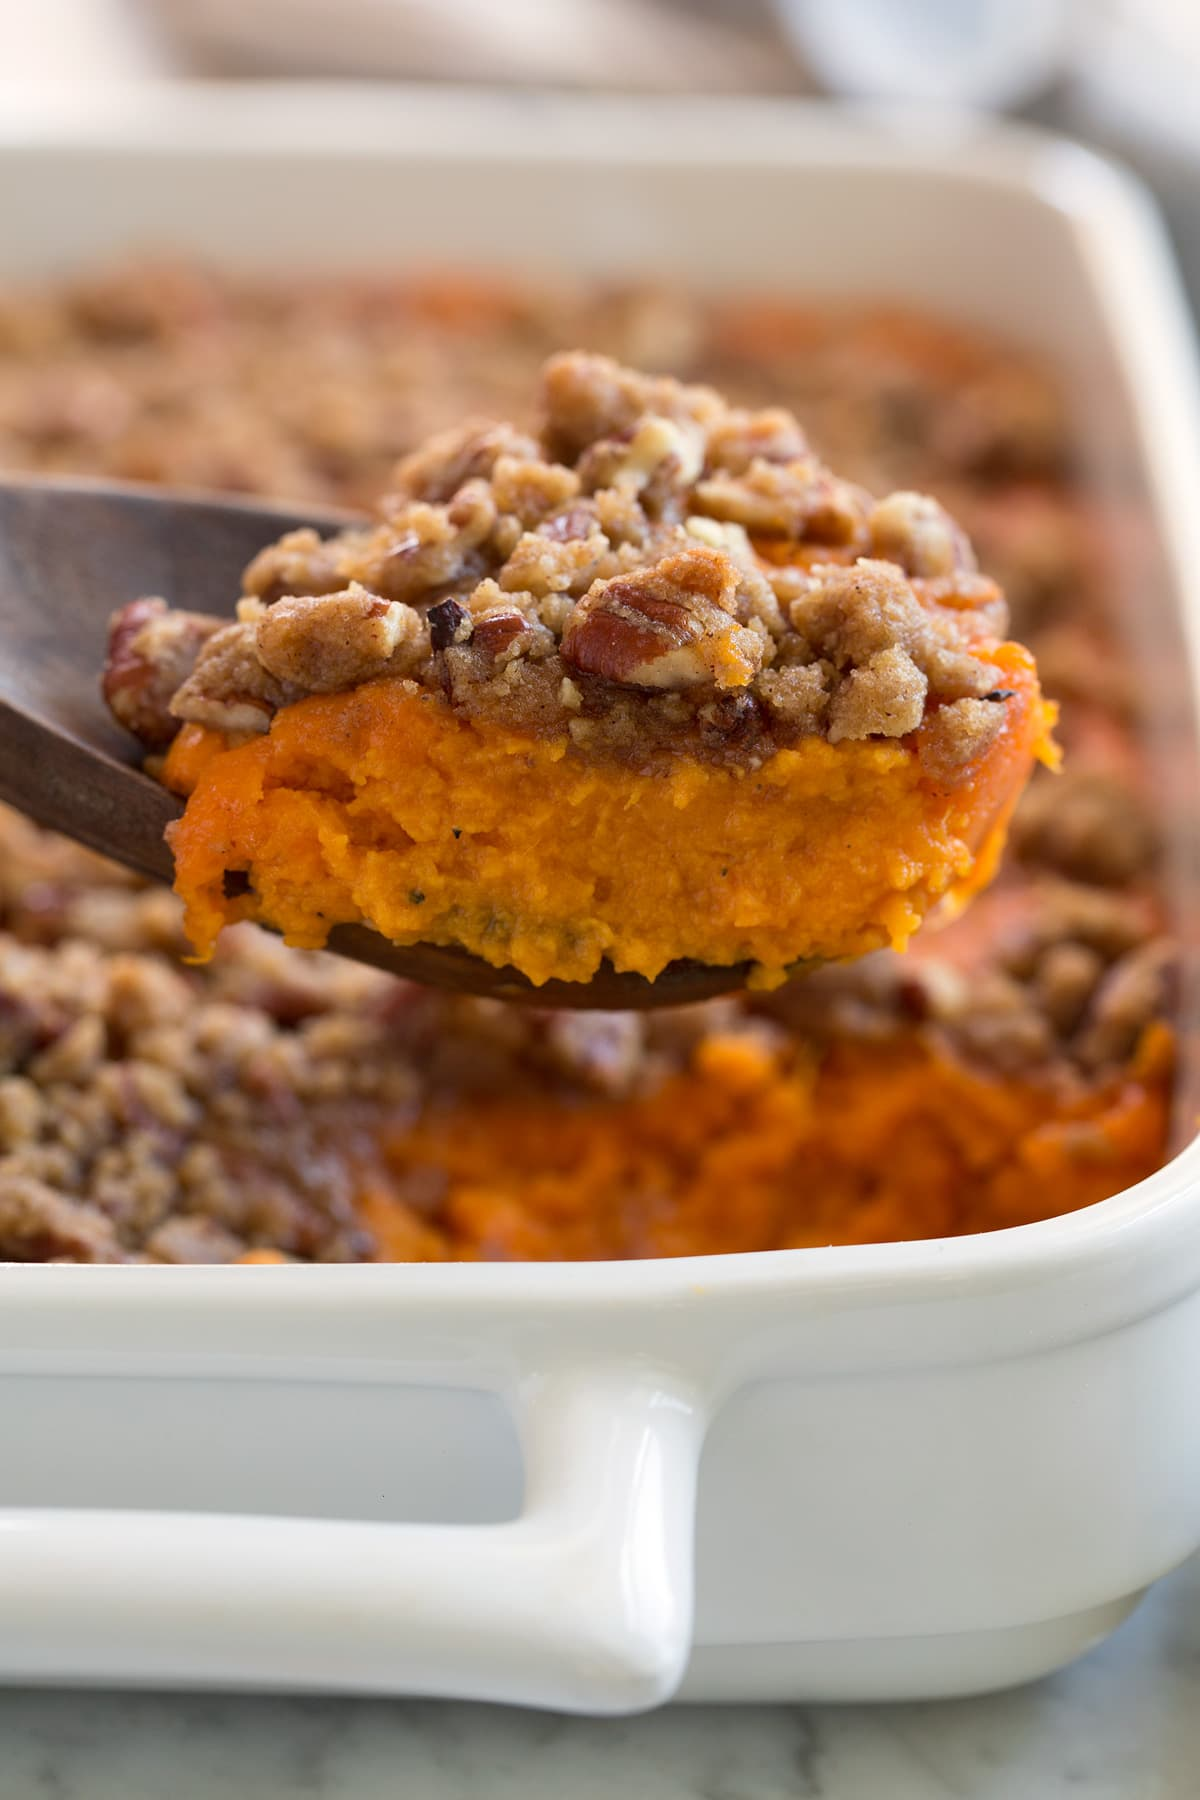 Close up image of a scoop of sweet potato casserole showing creamy orange sweet potato layer and a crisp, sugary pecan crumble.